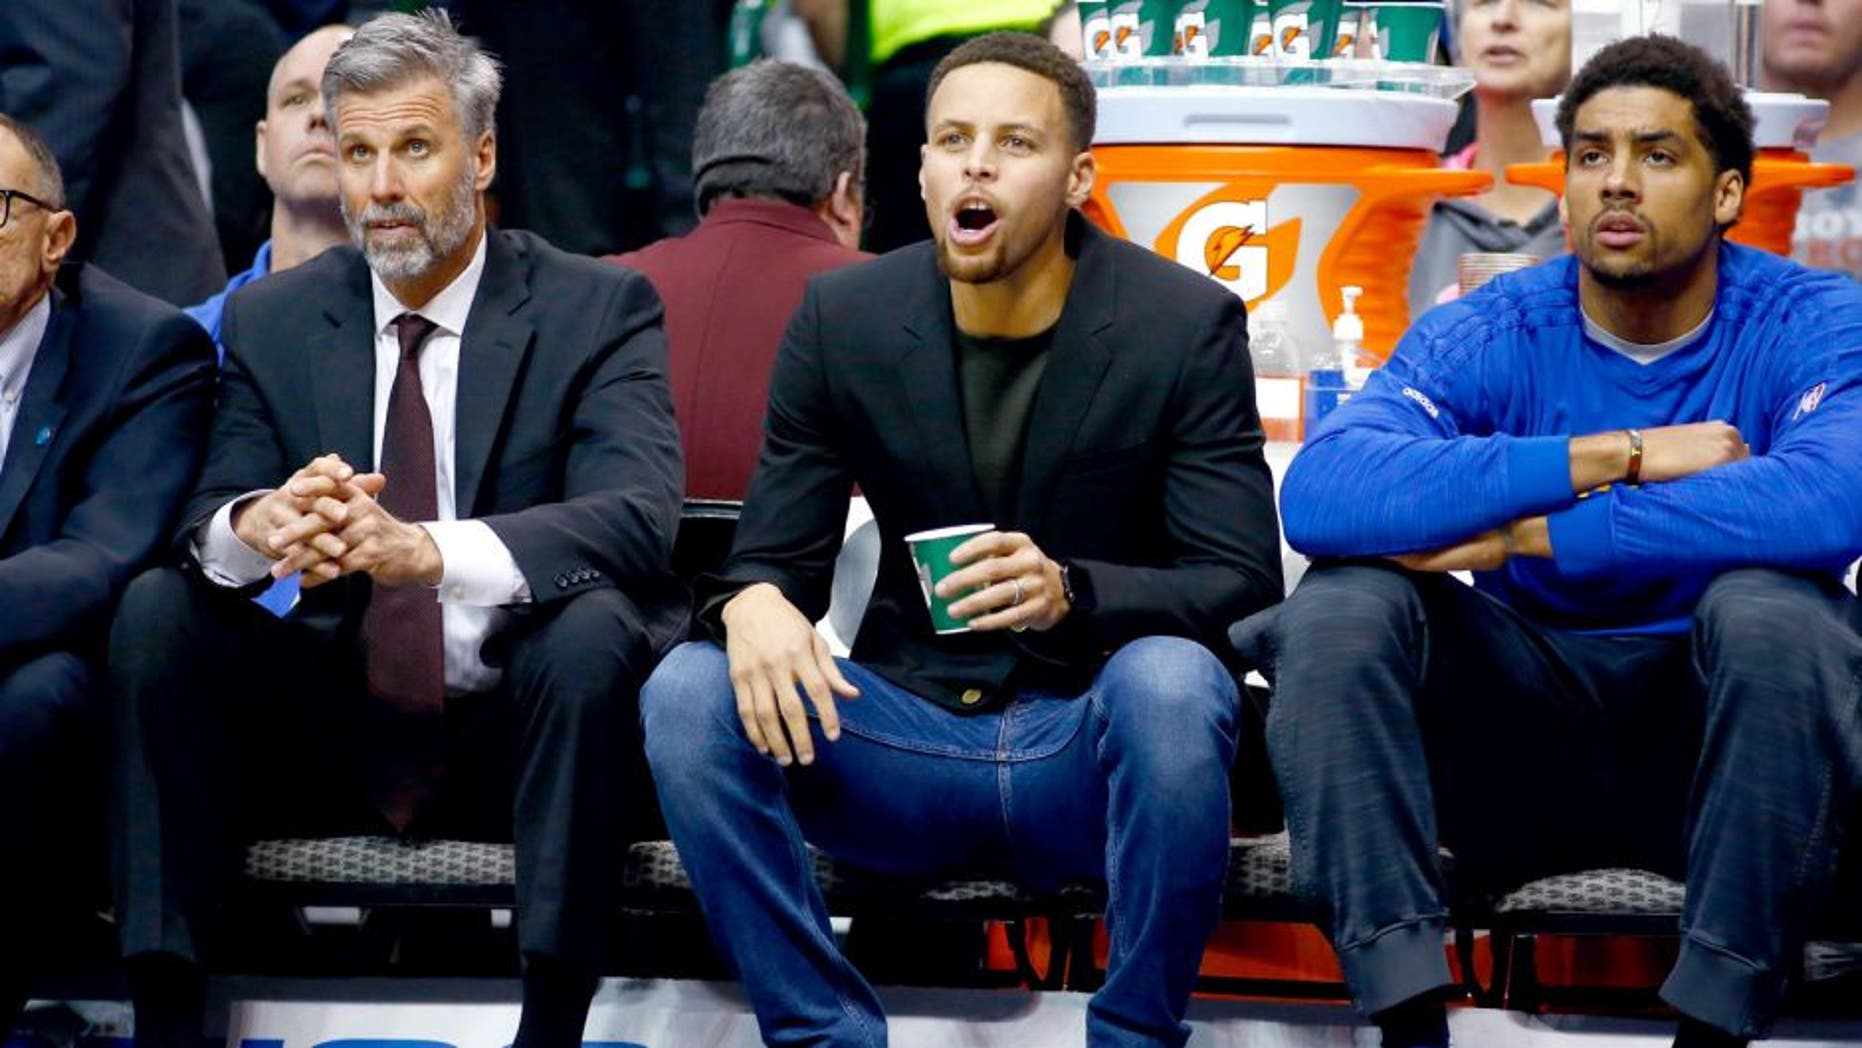 DALLAS, TX - DECEMBER 30: Stephen Curry #30 of the Golden State Warriors yells while on the bench during a game against the Dallas Mavericks at American Airlines Center on December 30, 2015 in Dallas, Texas. NOTE TO USER: User expressly acknowledges and agrees that, by downloading and or using photograph, User is consenting to the terms and conditions of the Getty Images License Agreement. (Photo by Ronald Martinez/Getty Images)